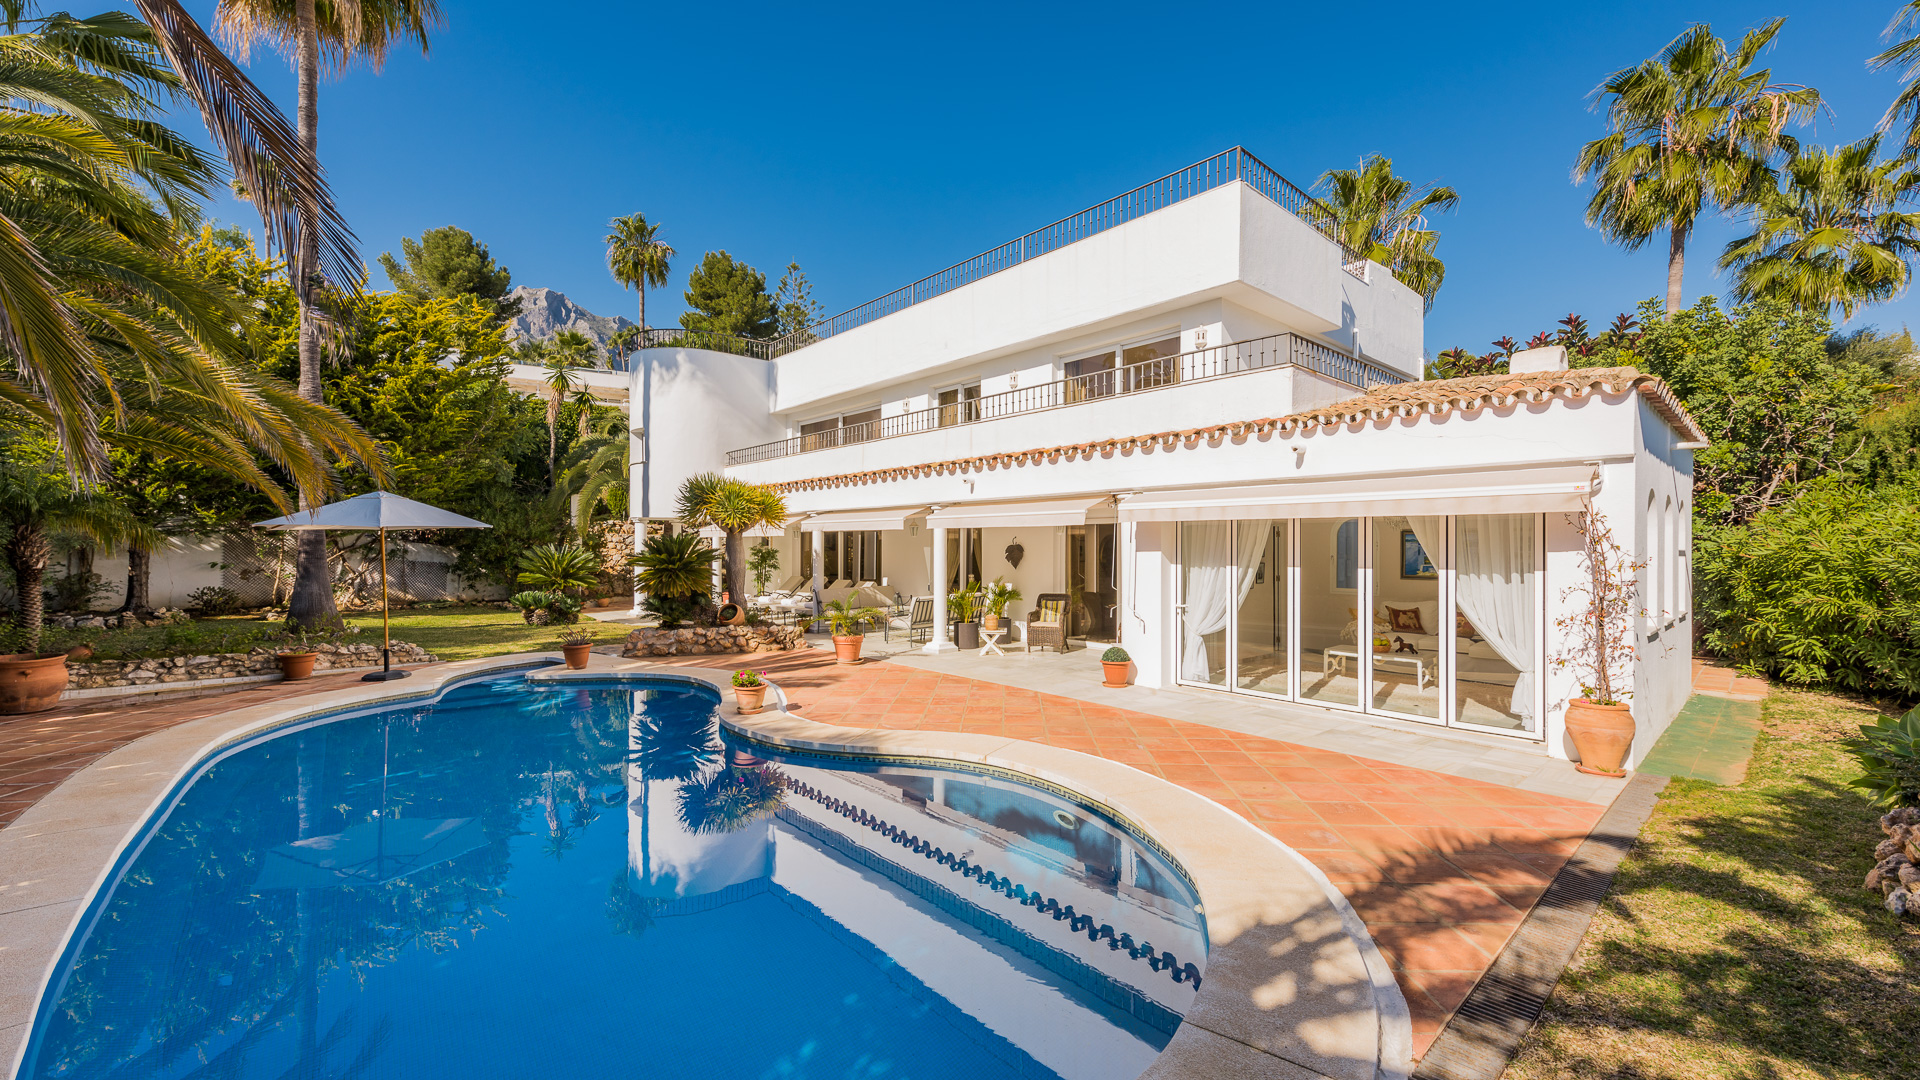 Villa for sale in Altos Reales